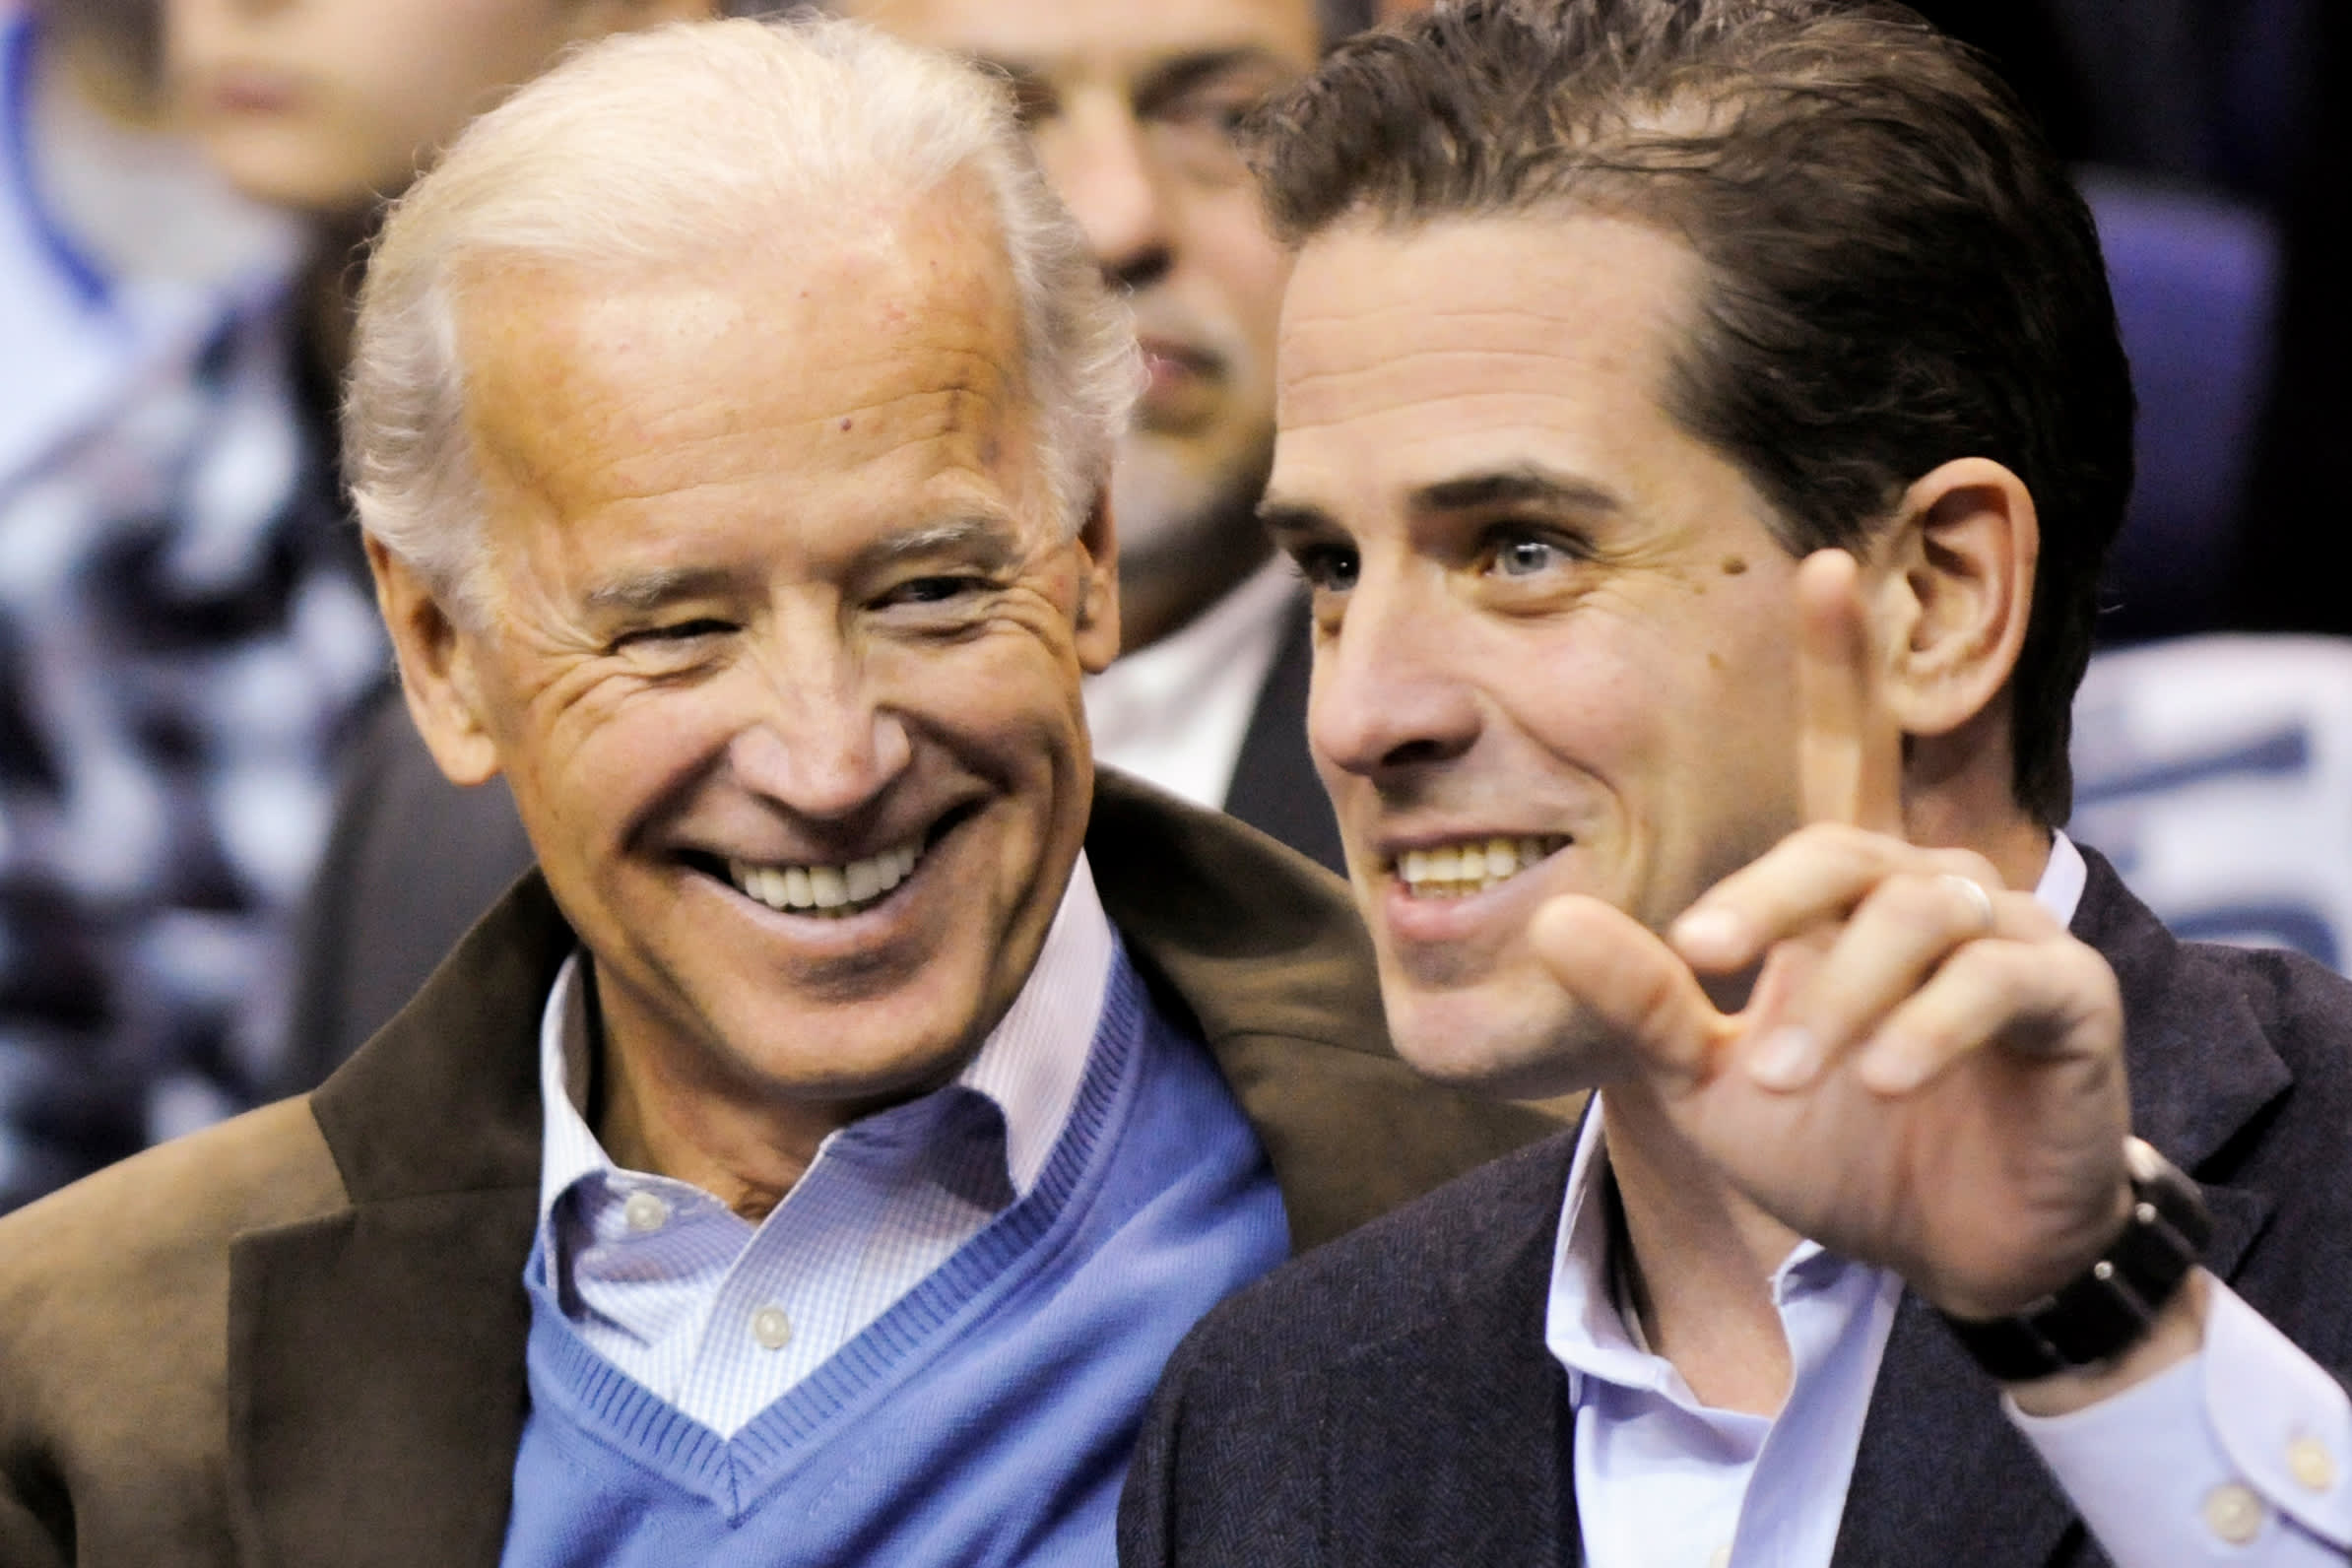 Joe Biden's son Hunter Biden under federal investigation for tax case